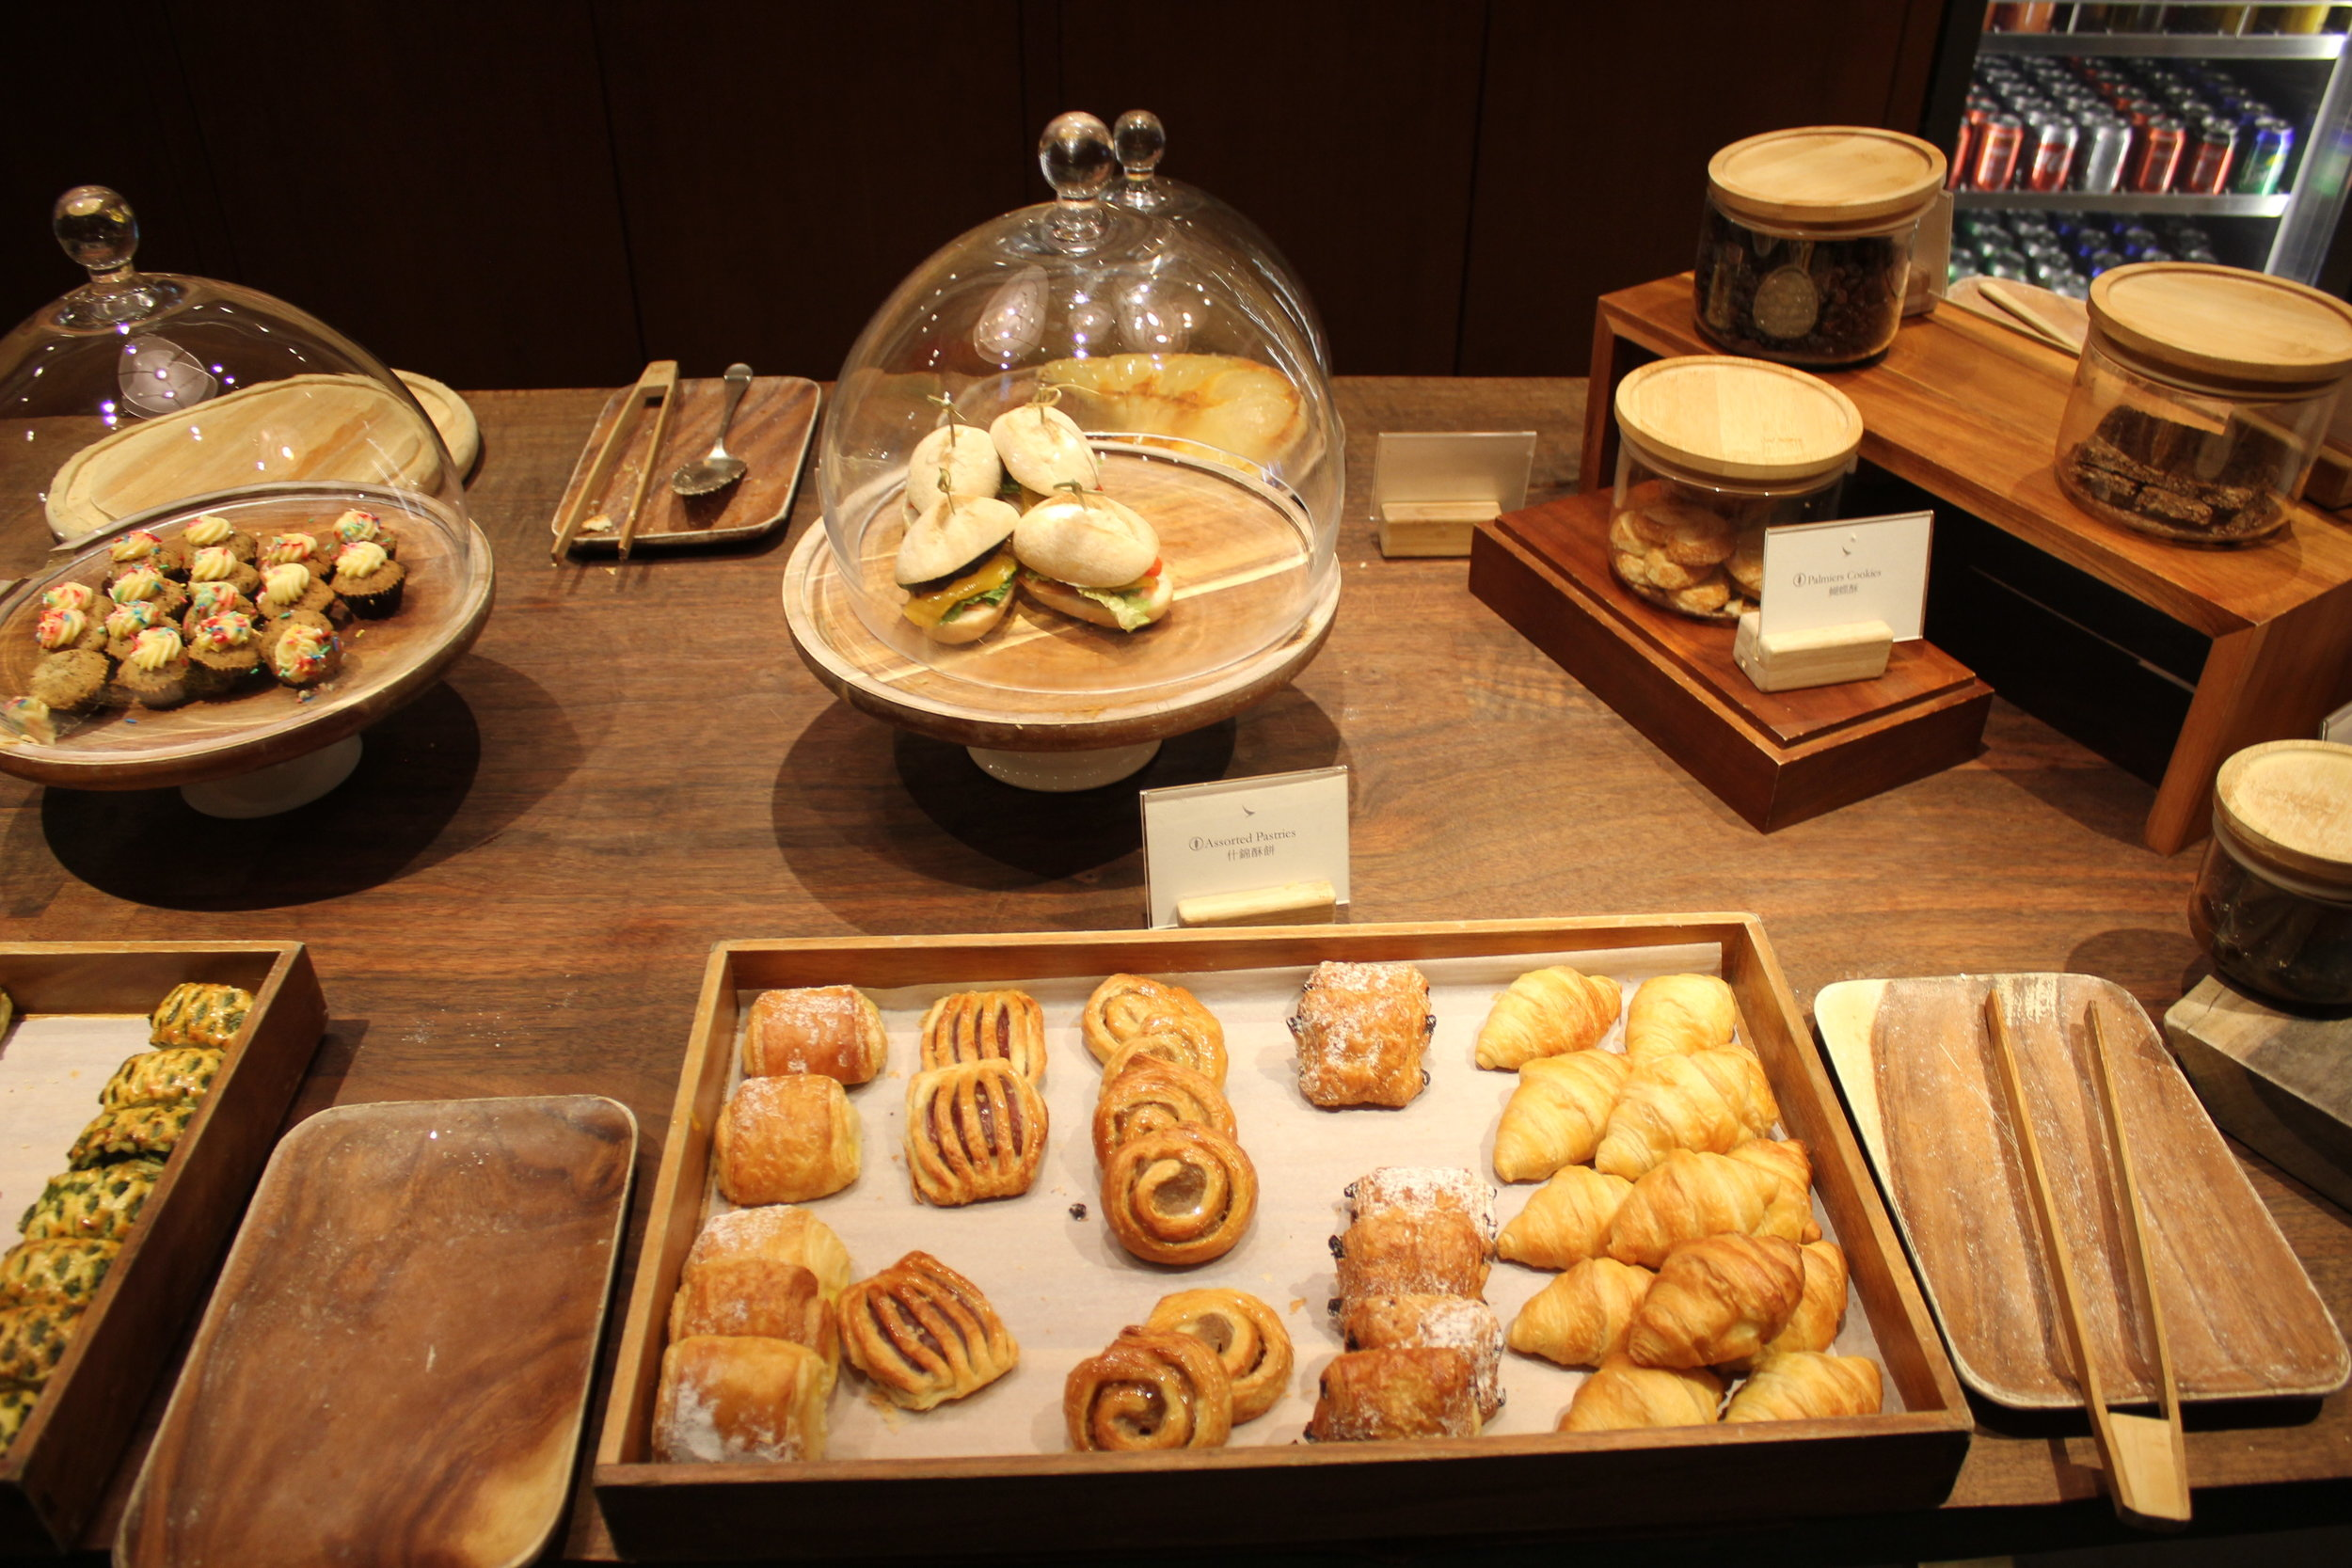 The-Pier-First-Class-Lounge-by-Cathay-Pacific-38.JPG